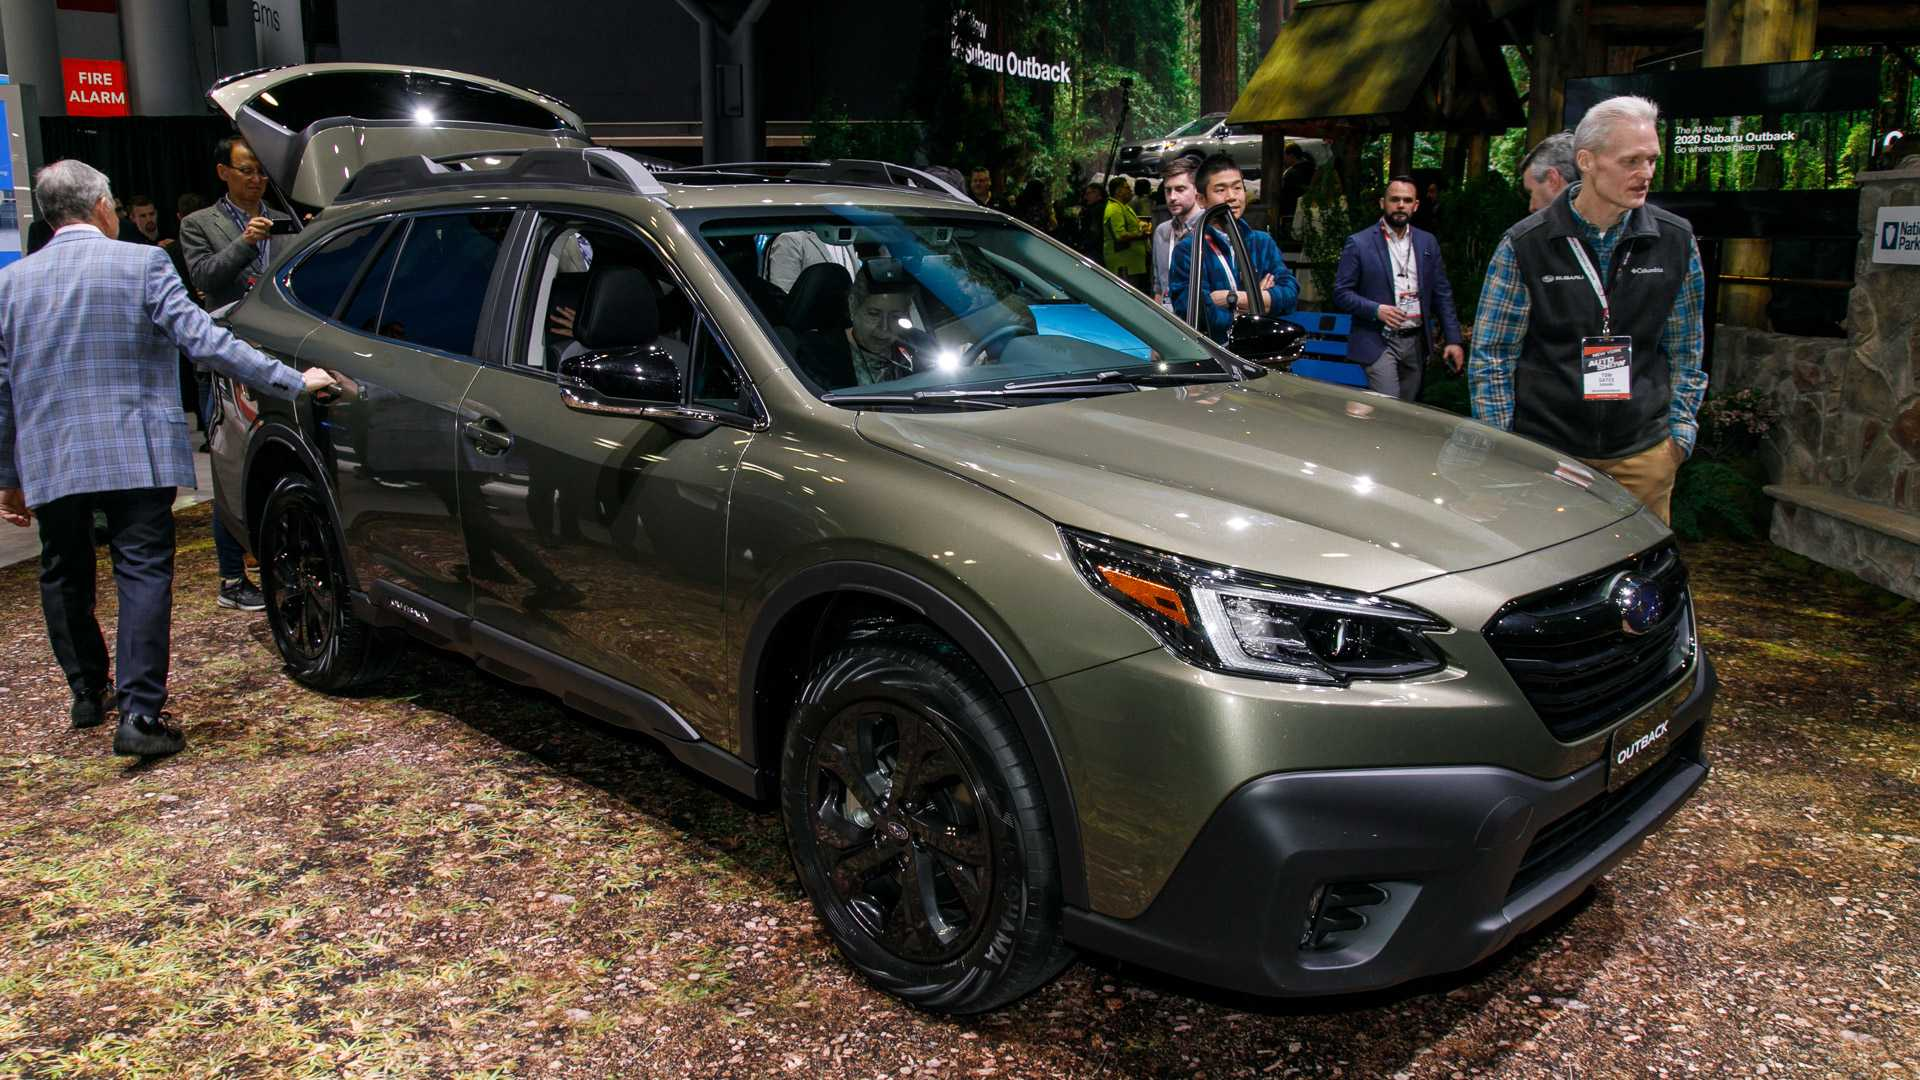 84 The Best 2020 Subaru Outback Ground Clearance Overview